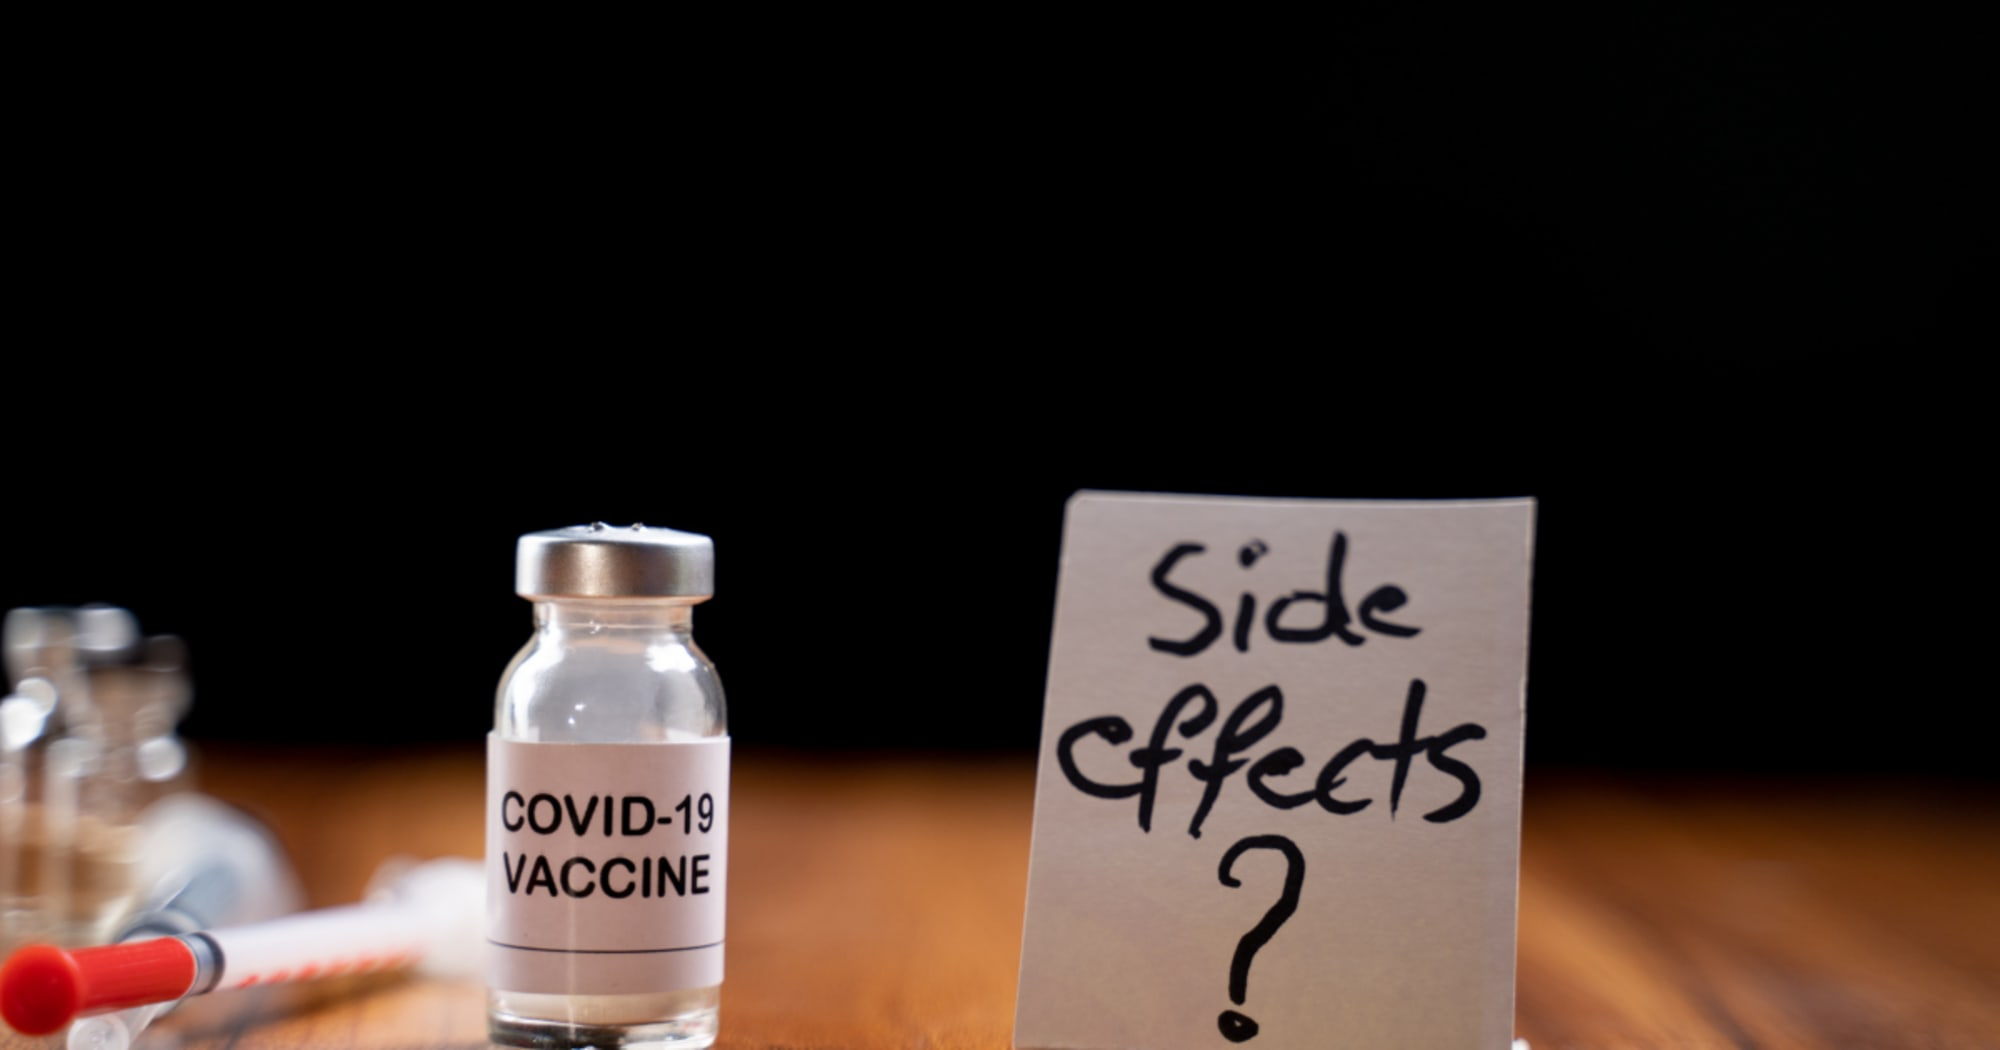 What COVID-19 vaccine side effects might I expect?